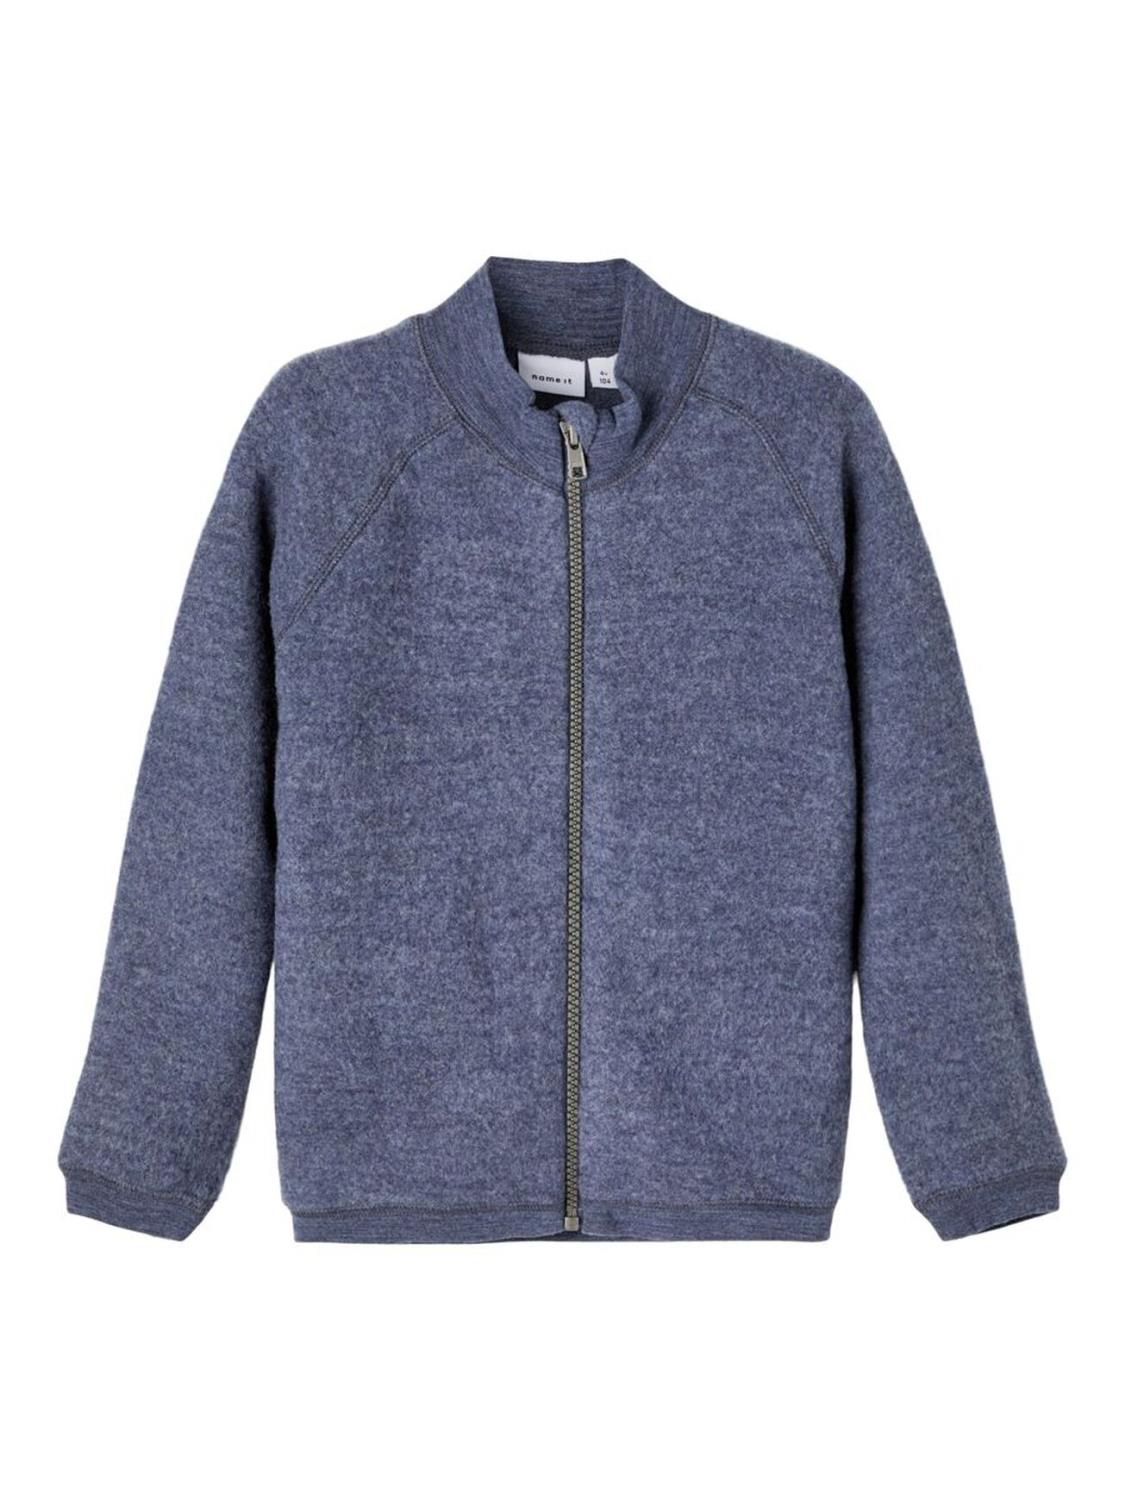 Wmino Wool Brushed Cardigan - Ombre Blue